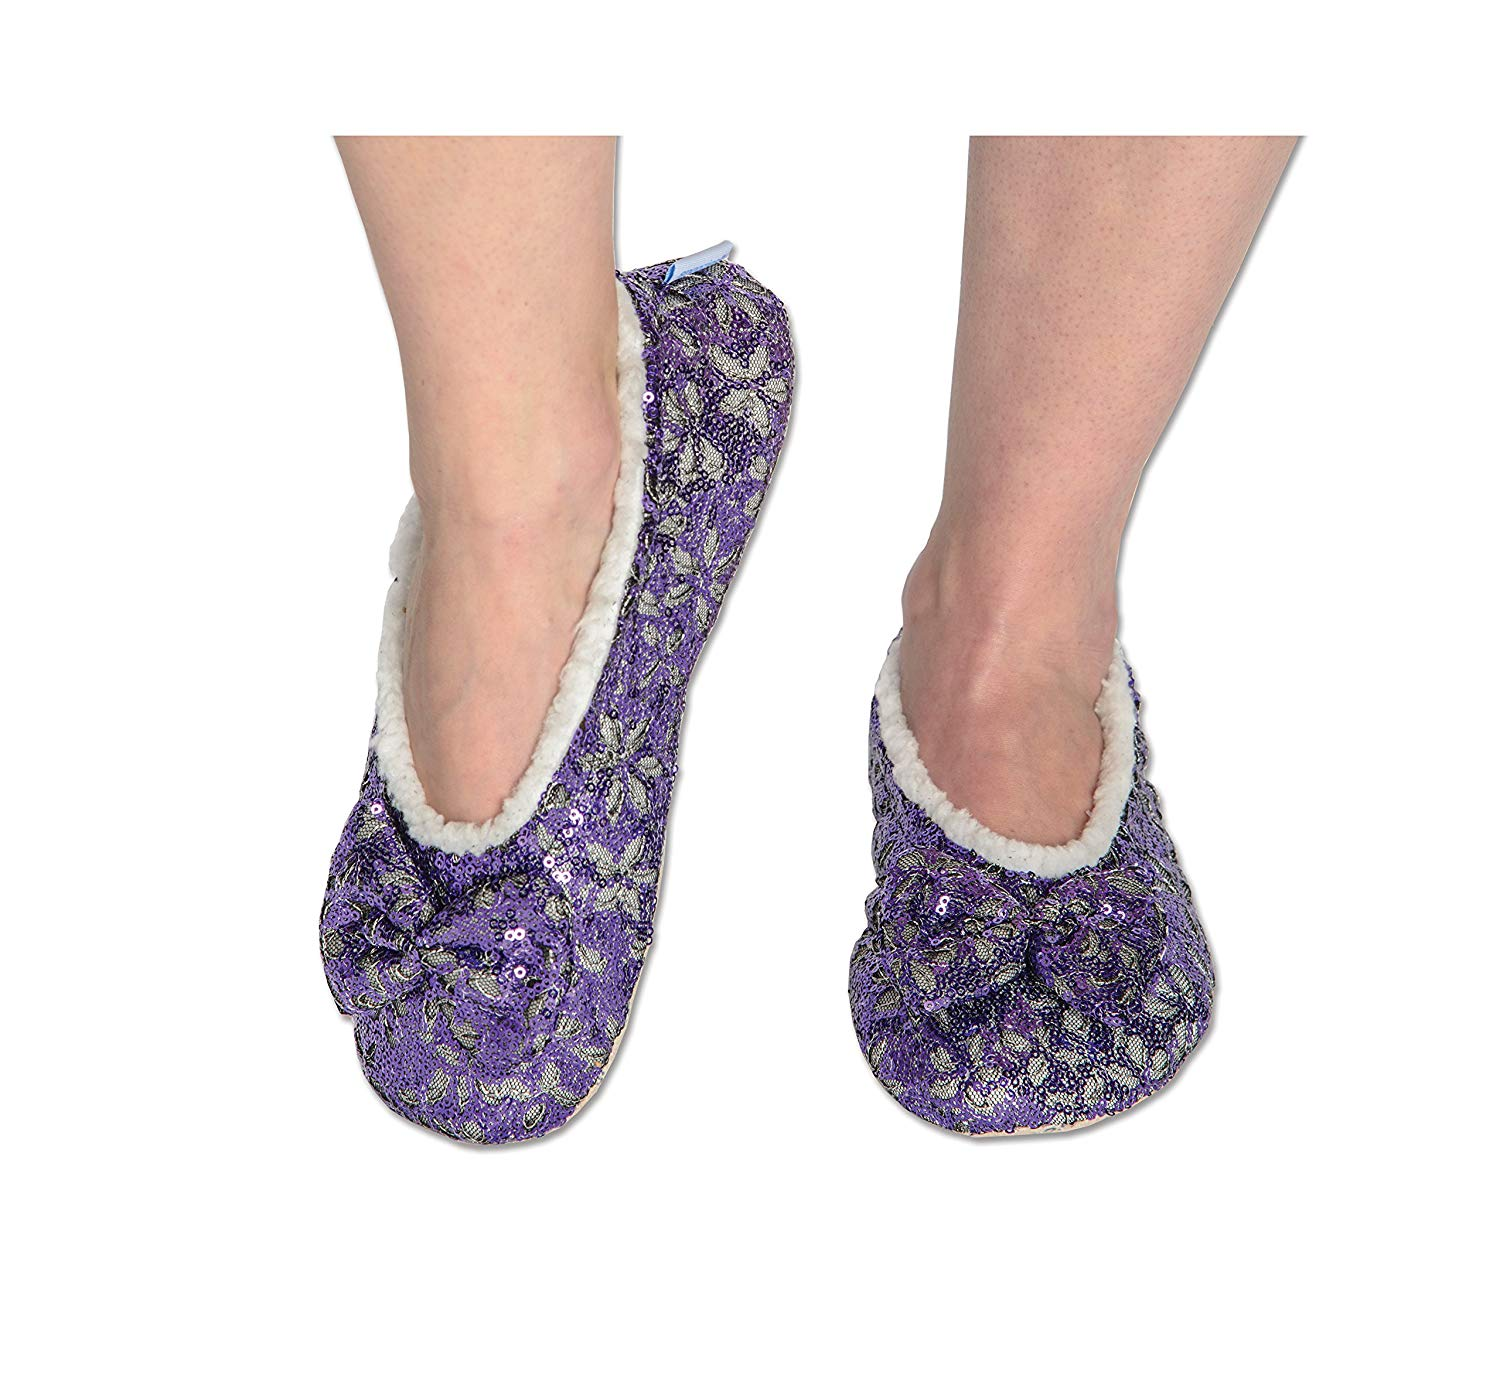 3a8bb5eed92 Snoozies Womens Indoor Outdoor Sole Constrast Stitching Suede Moccasins  Slippers · snoozies! Womens Sequin Glam Slippers with Split Comfort Fit Indoor  Sole